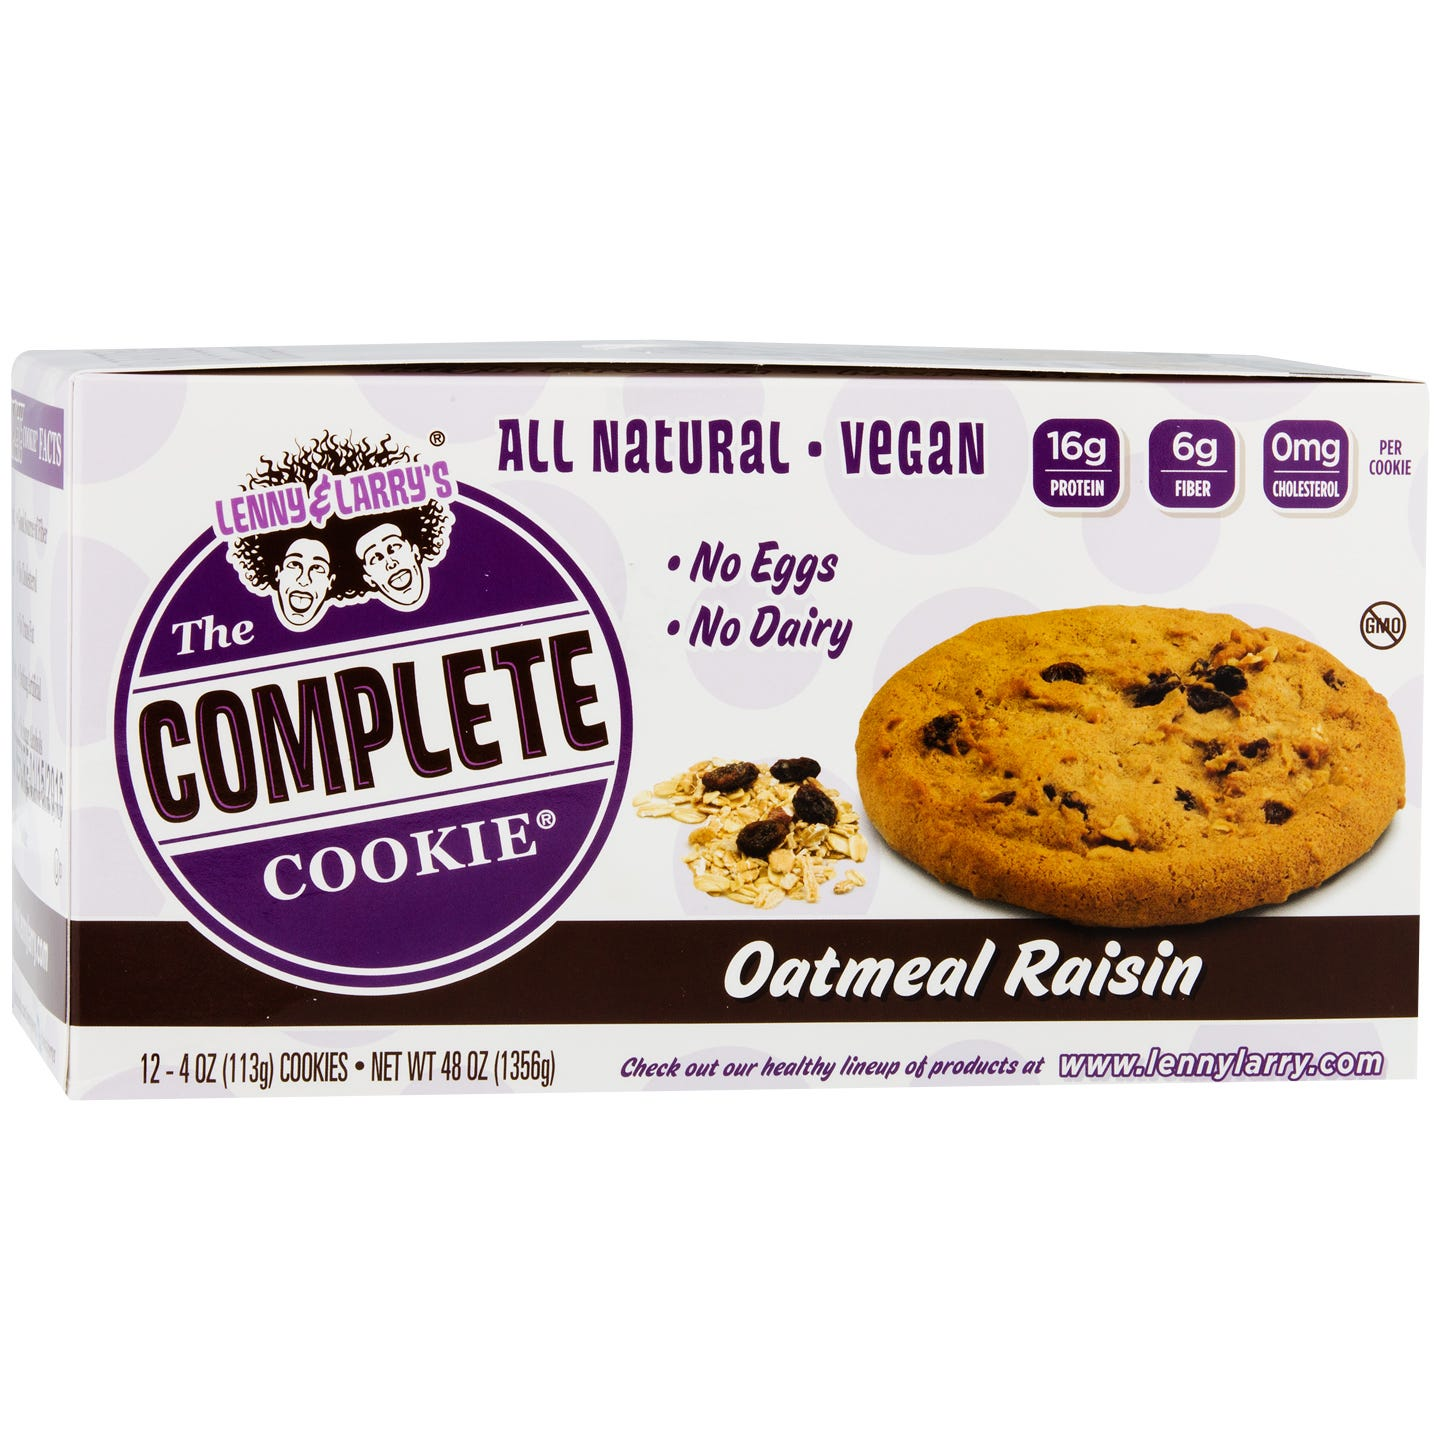 The Vegan Complete Cookie Oatmeal Raisin (12 ct) - Lenny & Larry's - Rapid Diet Weight Loss Products Shop